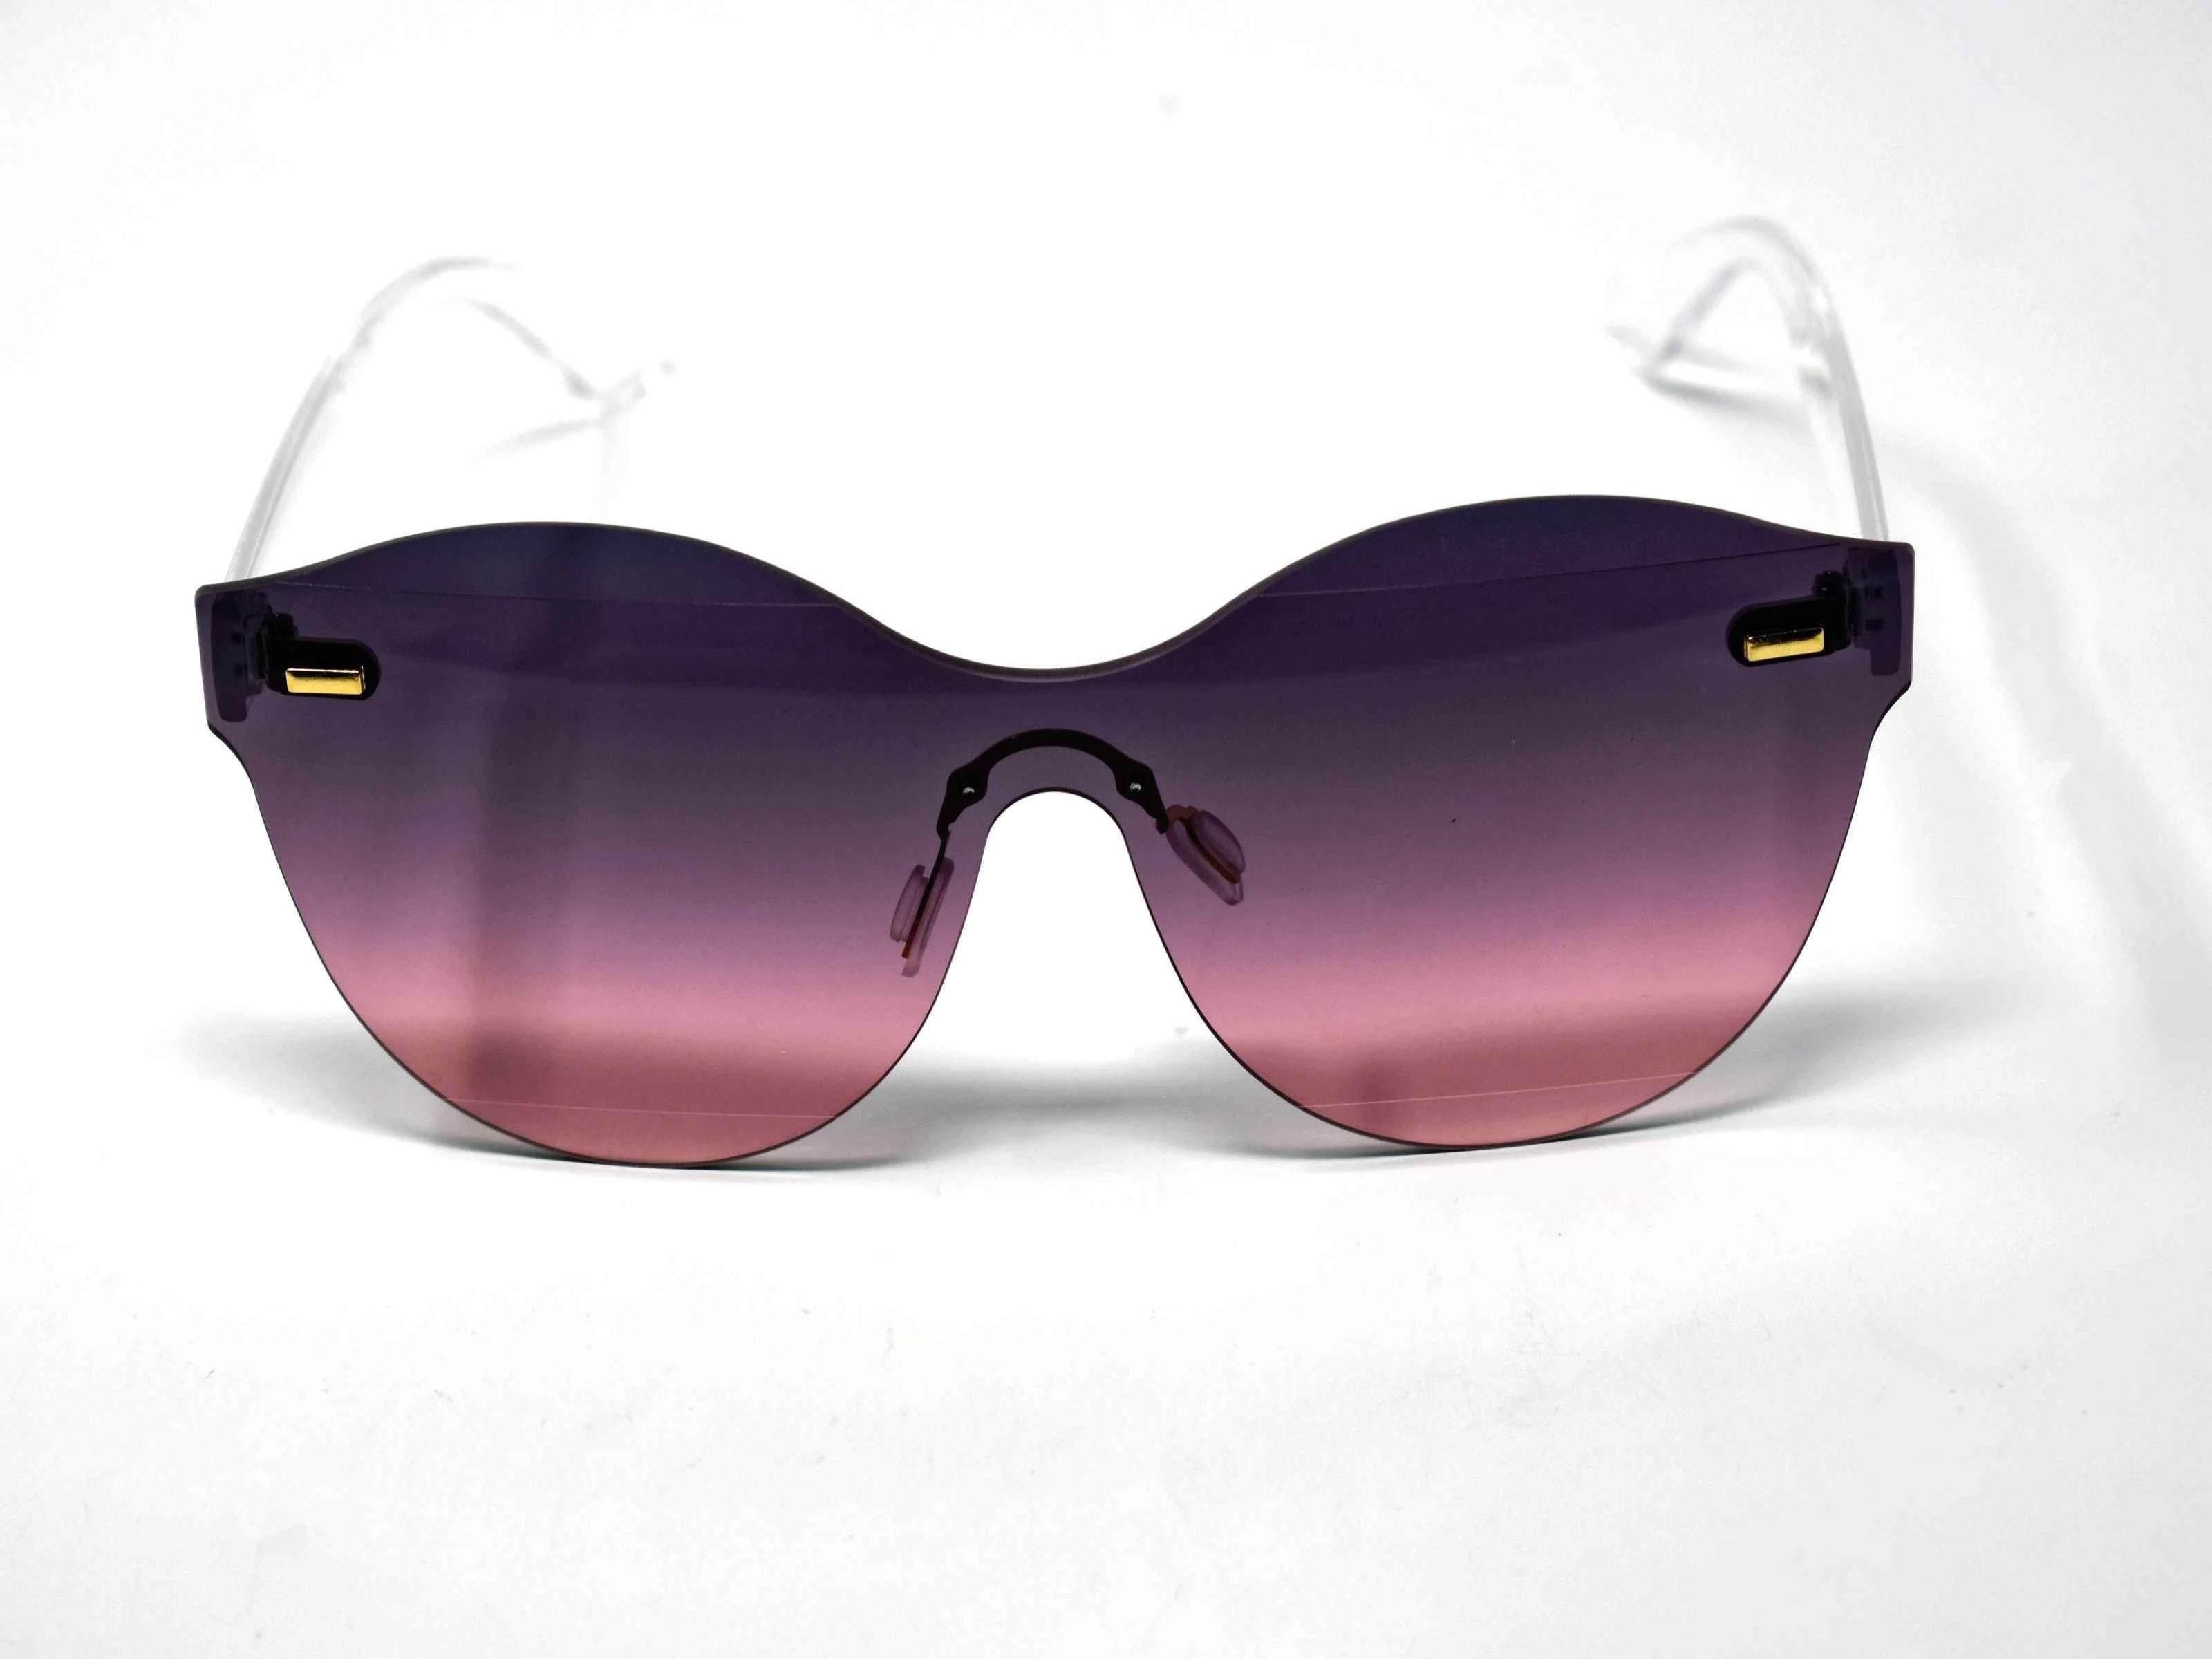 Its just a good vibe in these sage no rim sunglass frames with a plum to pink ombre lens.